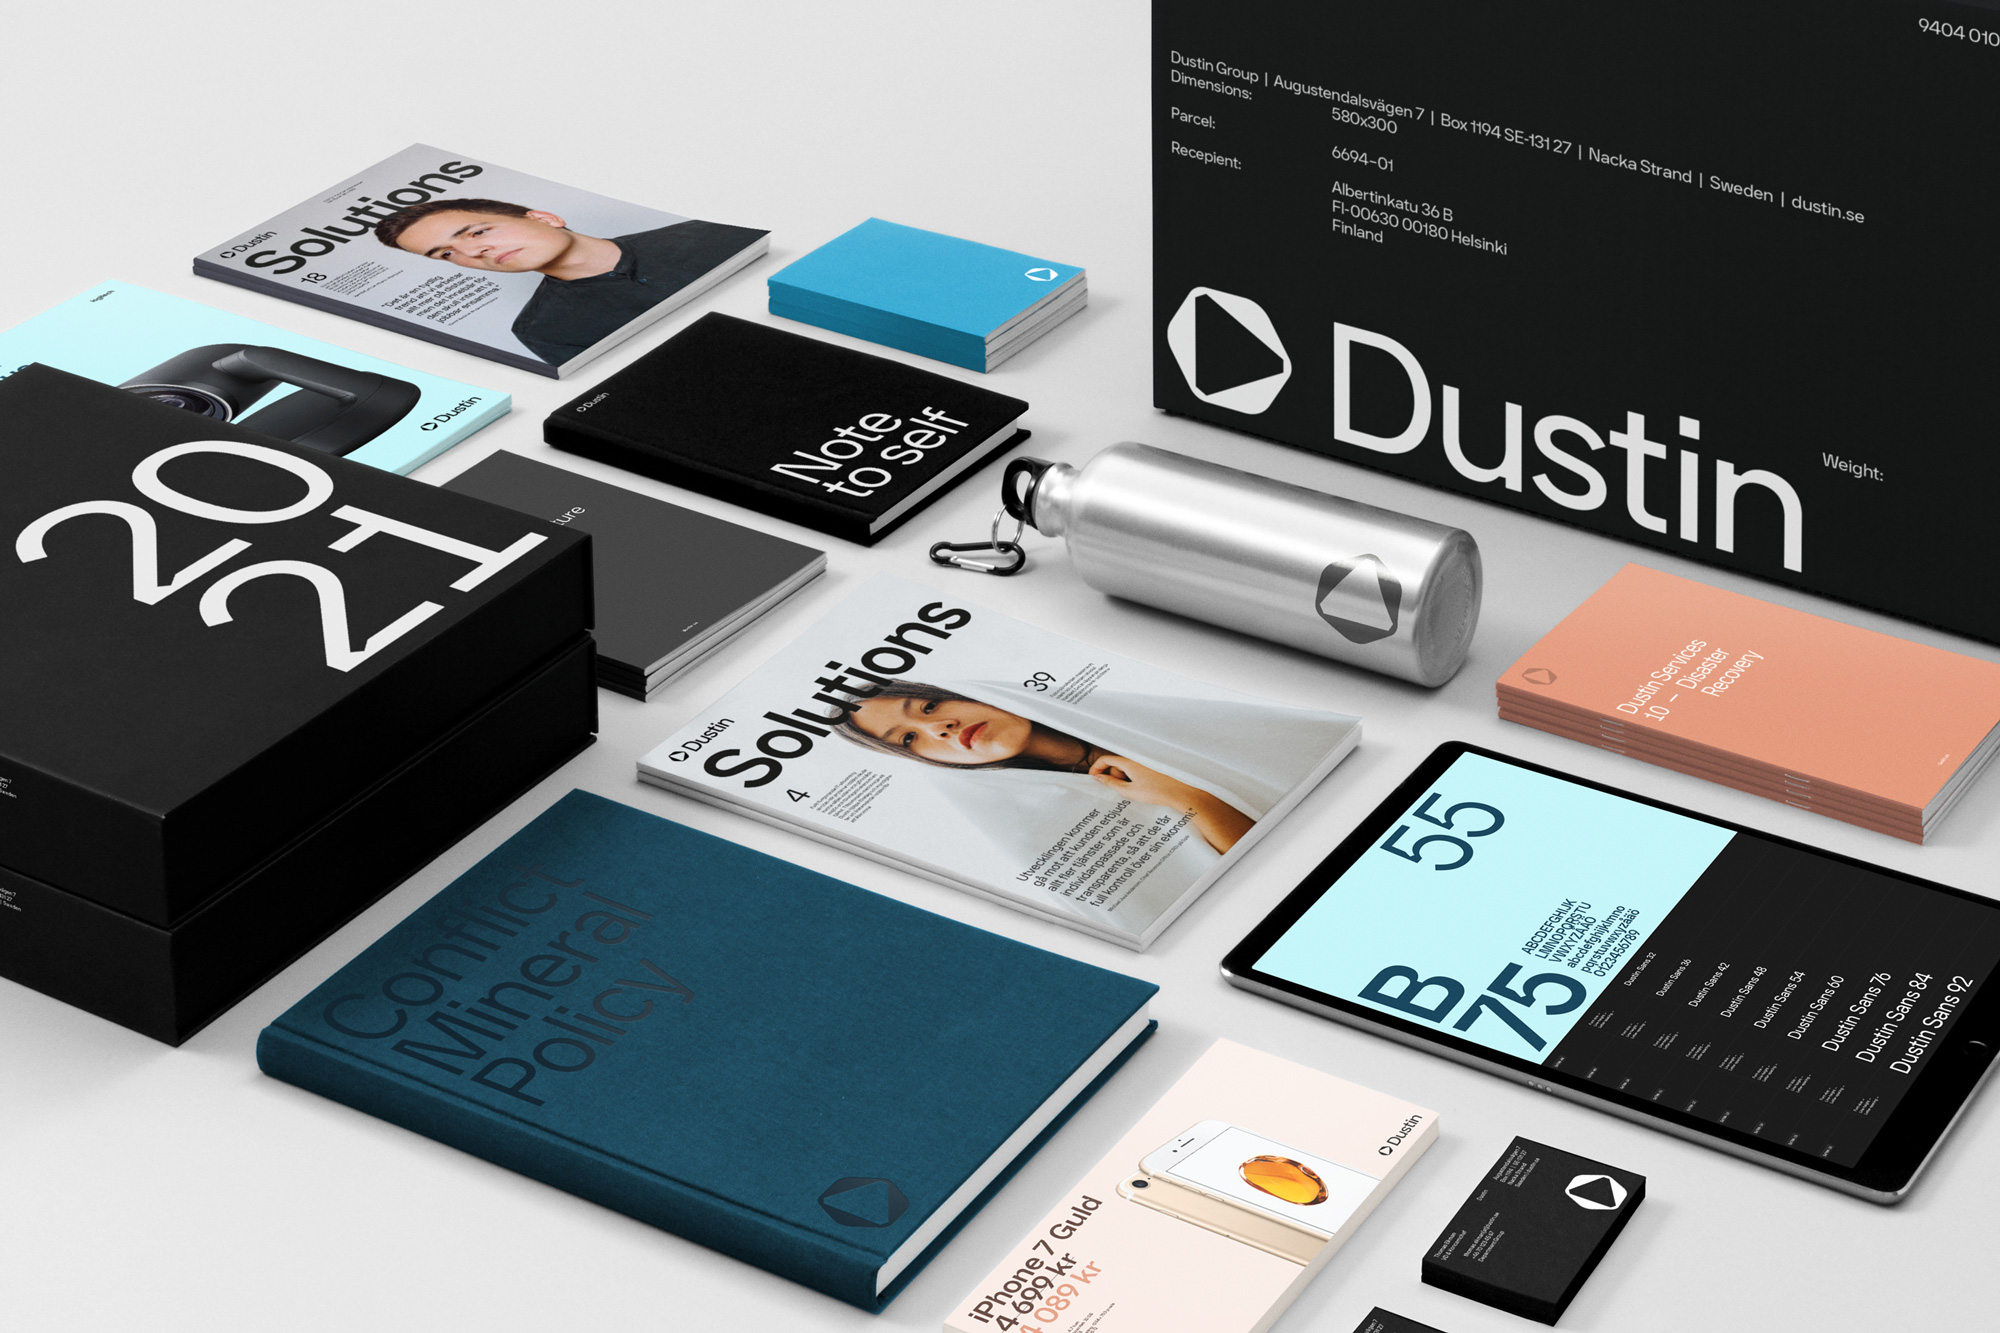 New Logo and Identity for Dustin by Kurppa Hosk